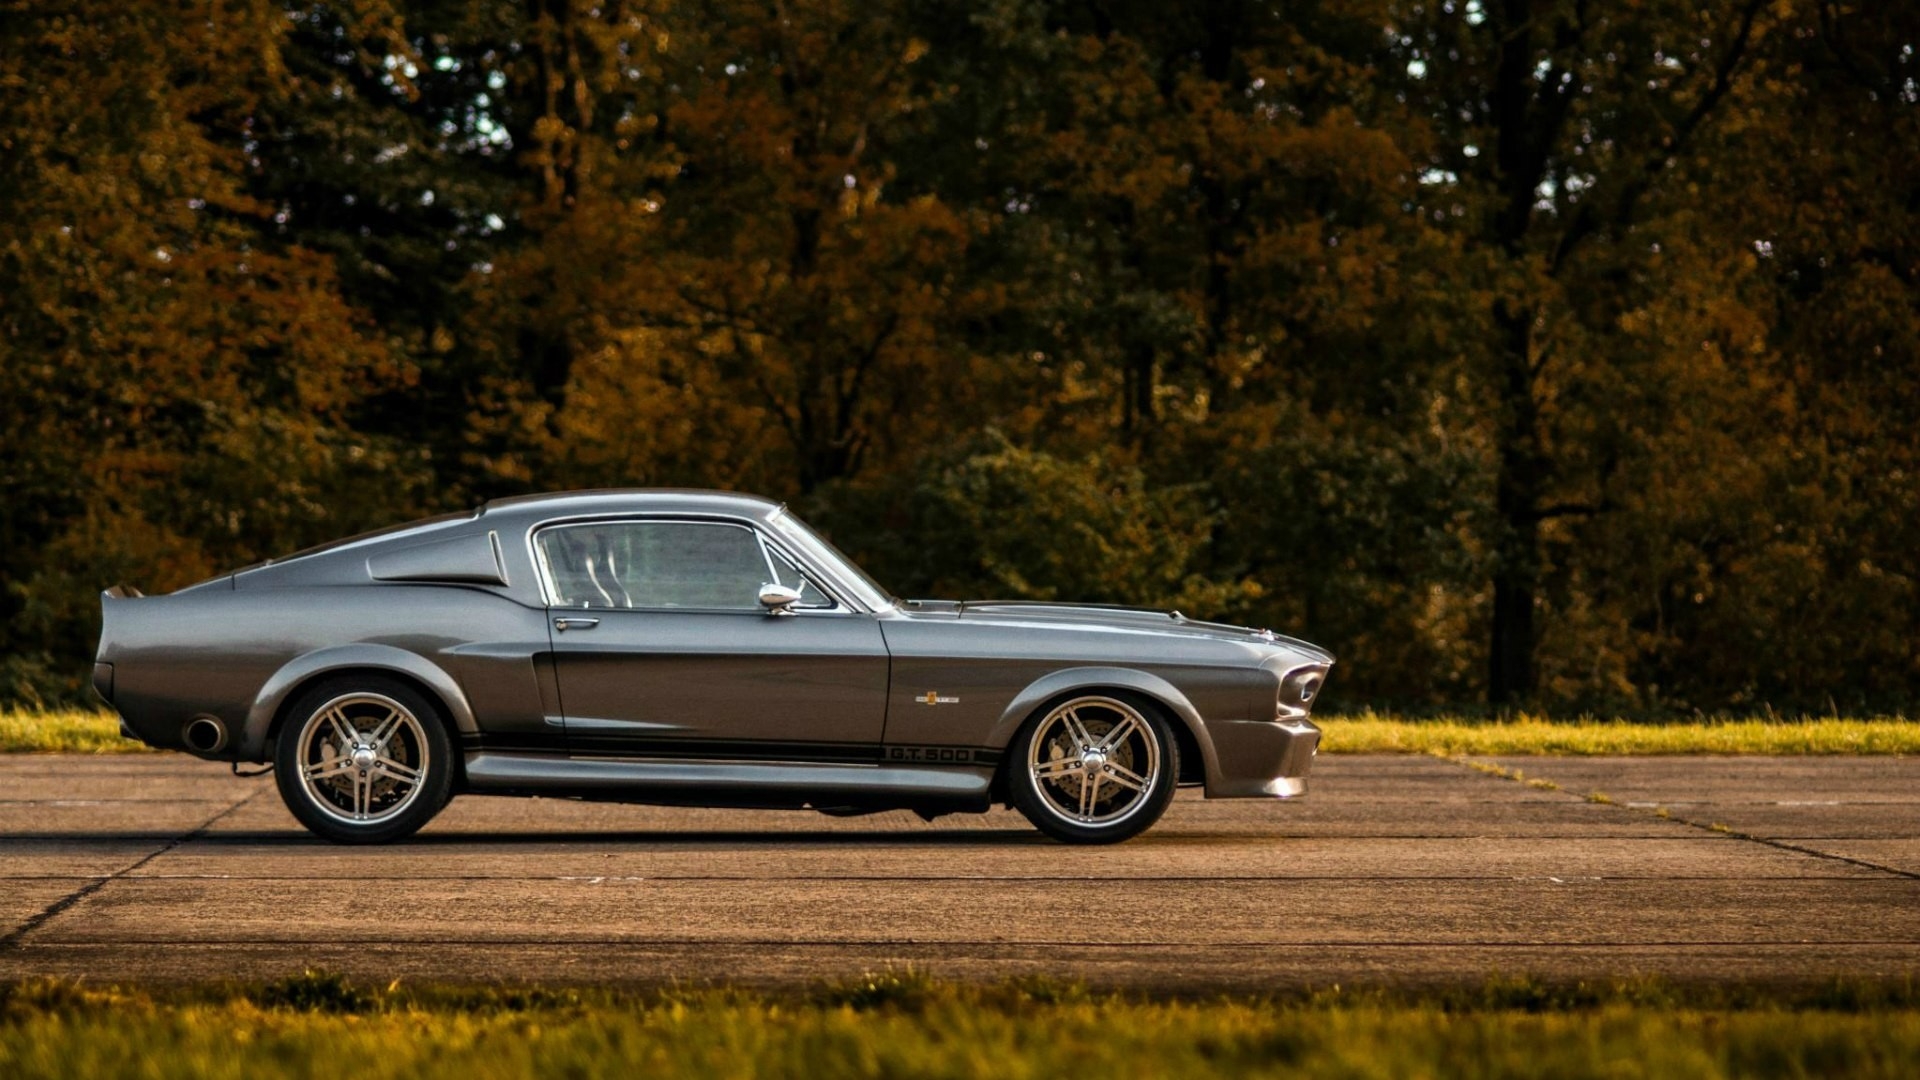 Classic Ford Mustang Wallpaper (74+ images)